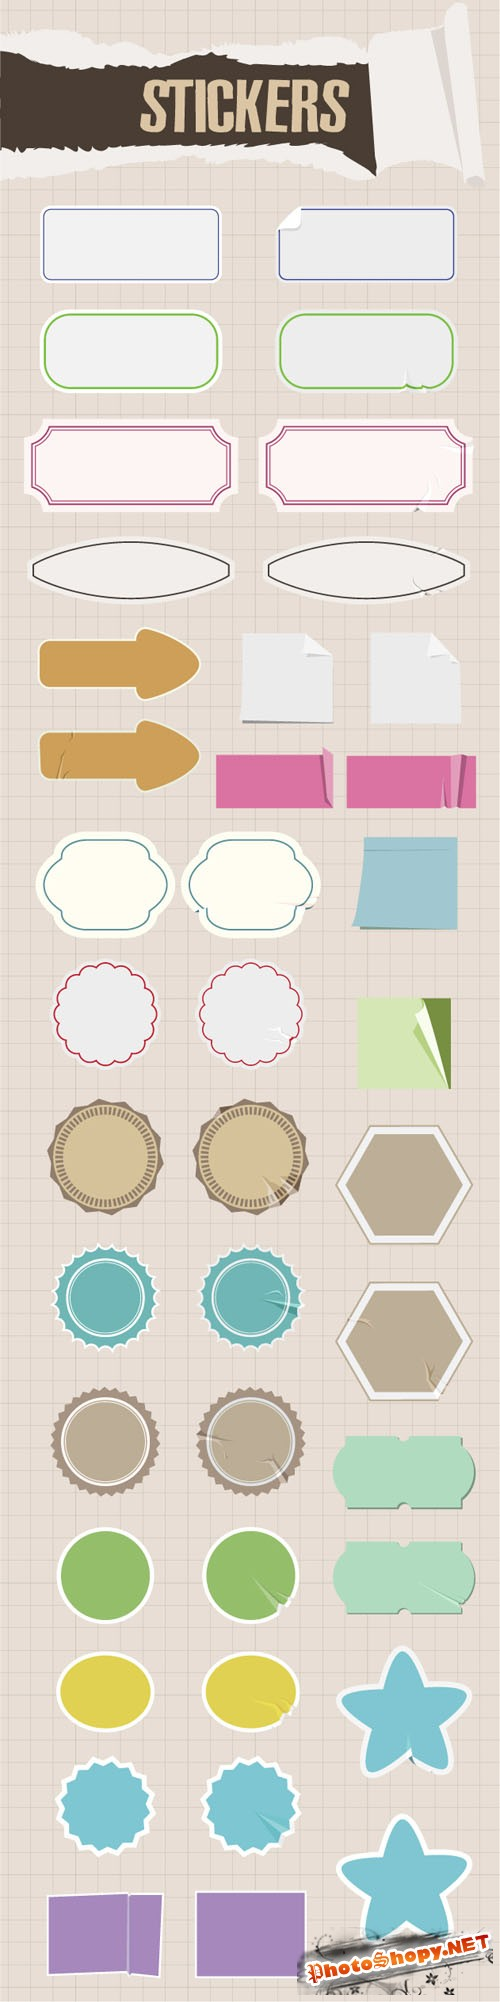 Designtnt - Stickers Vector Set 1